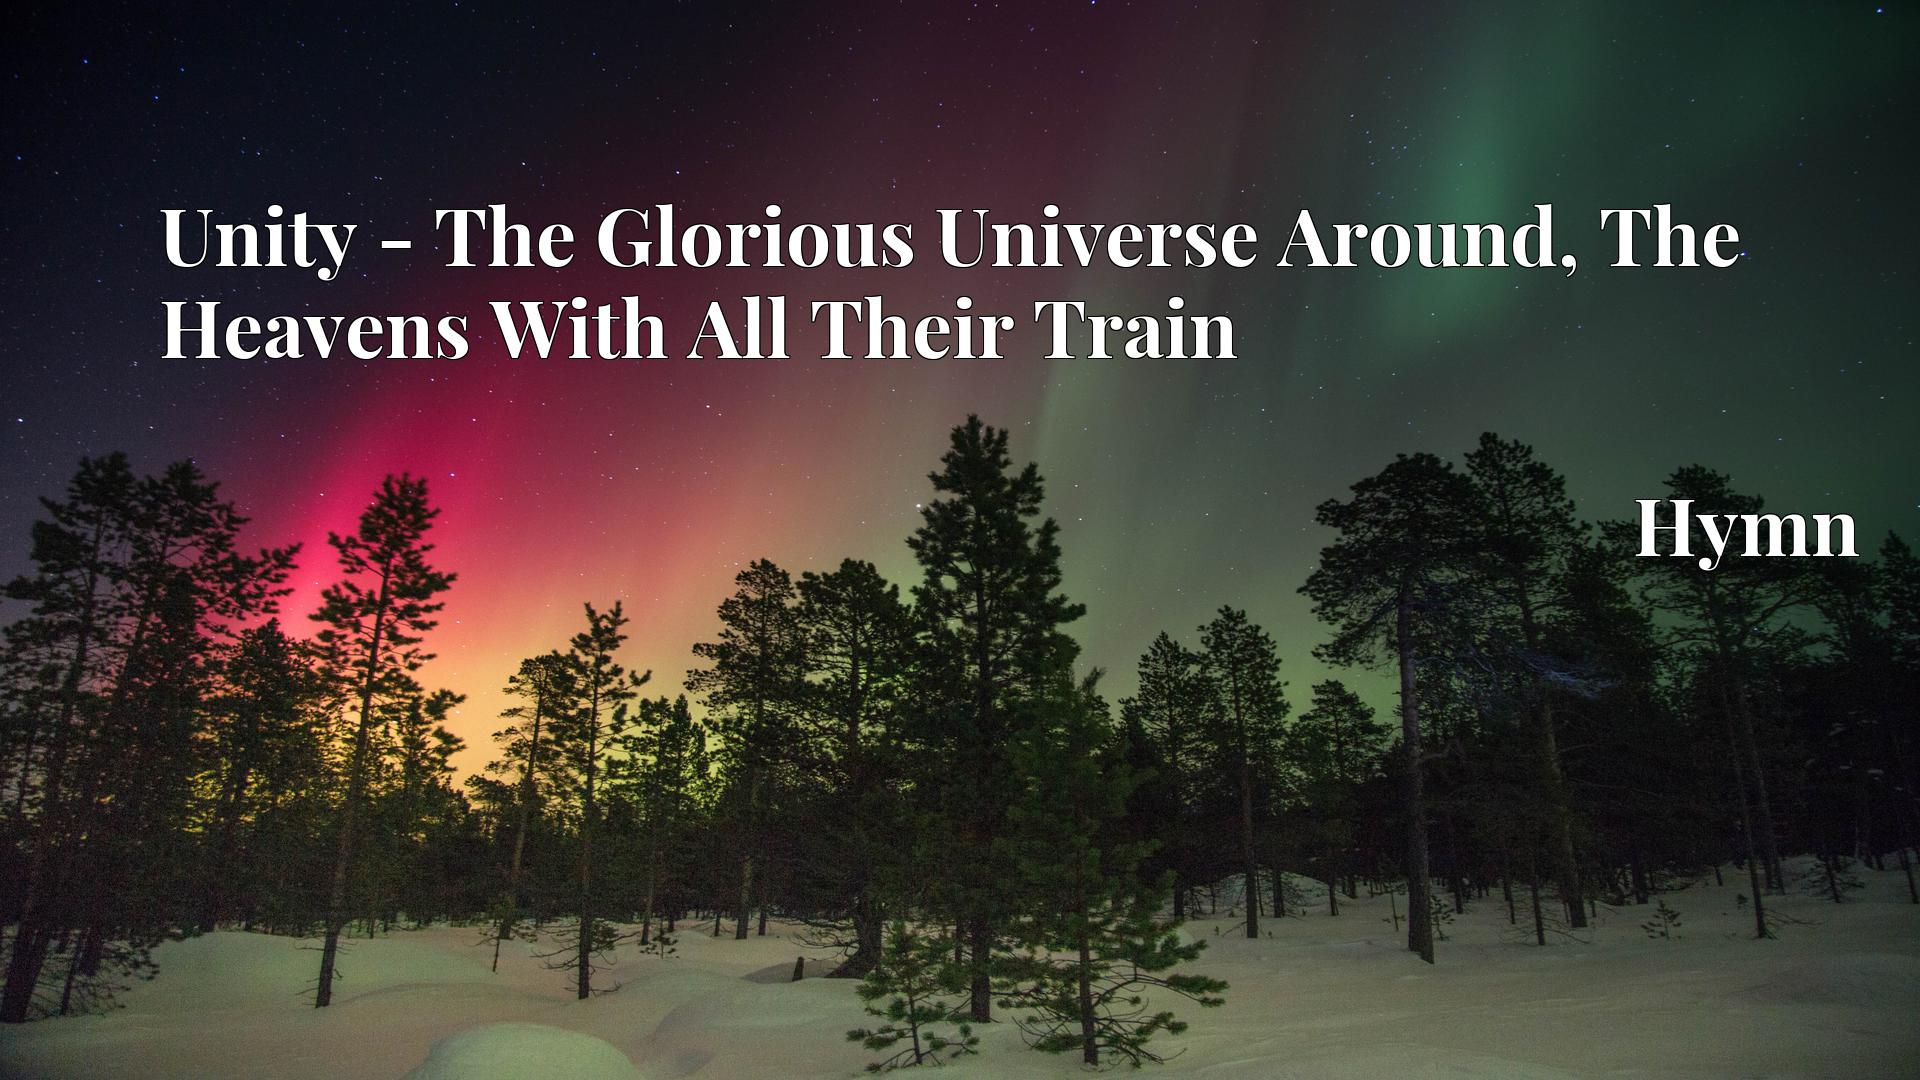 Unity - The Glorious Universe Around, The Heavens With All Their Train - Hymn